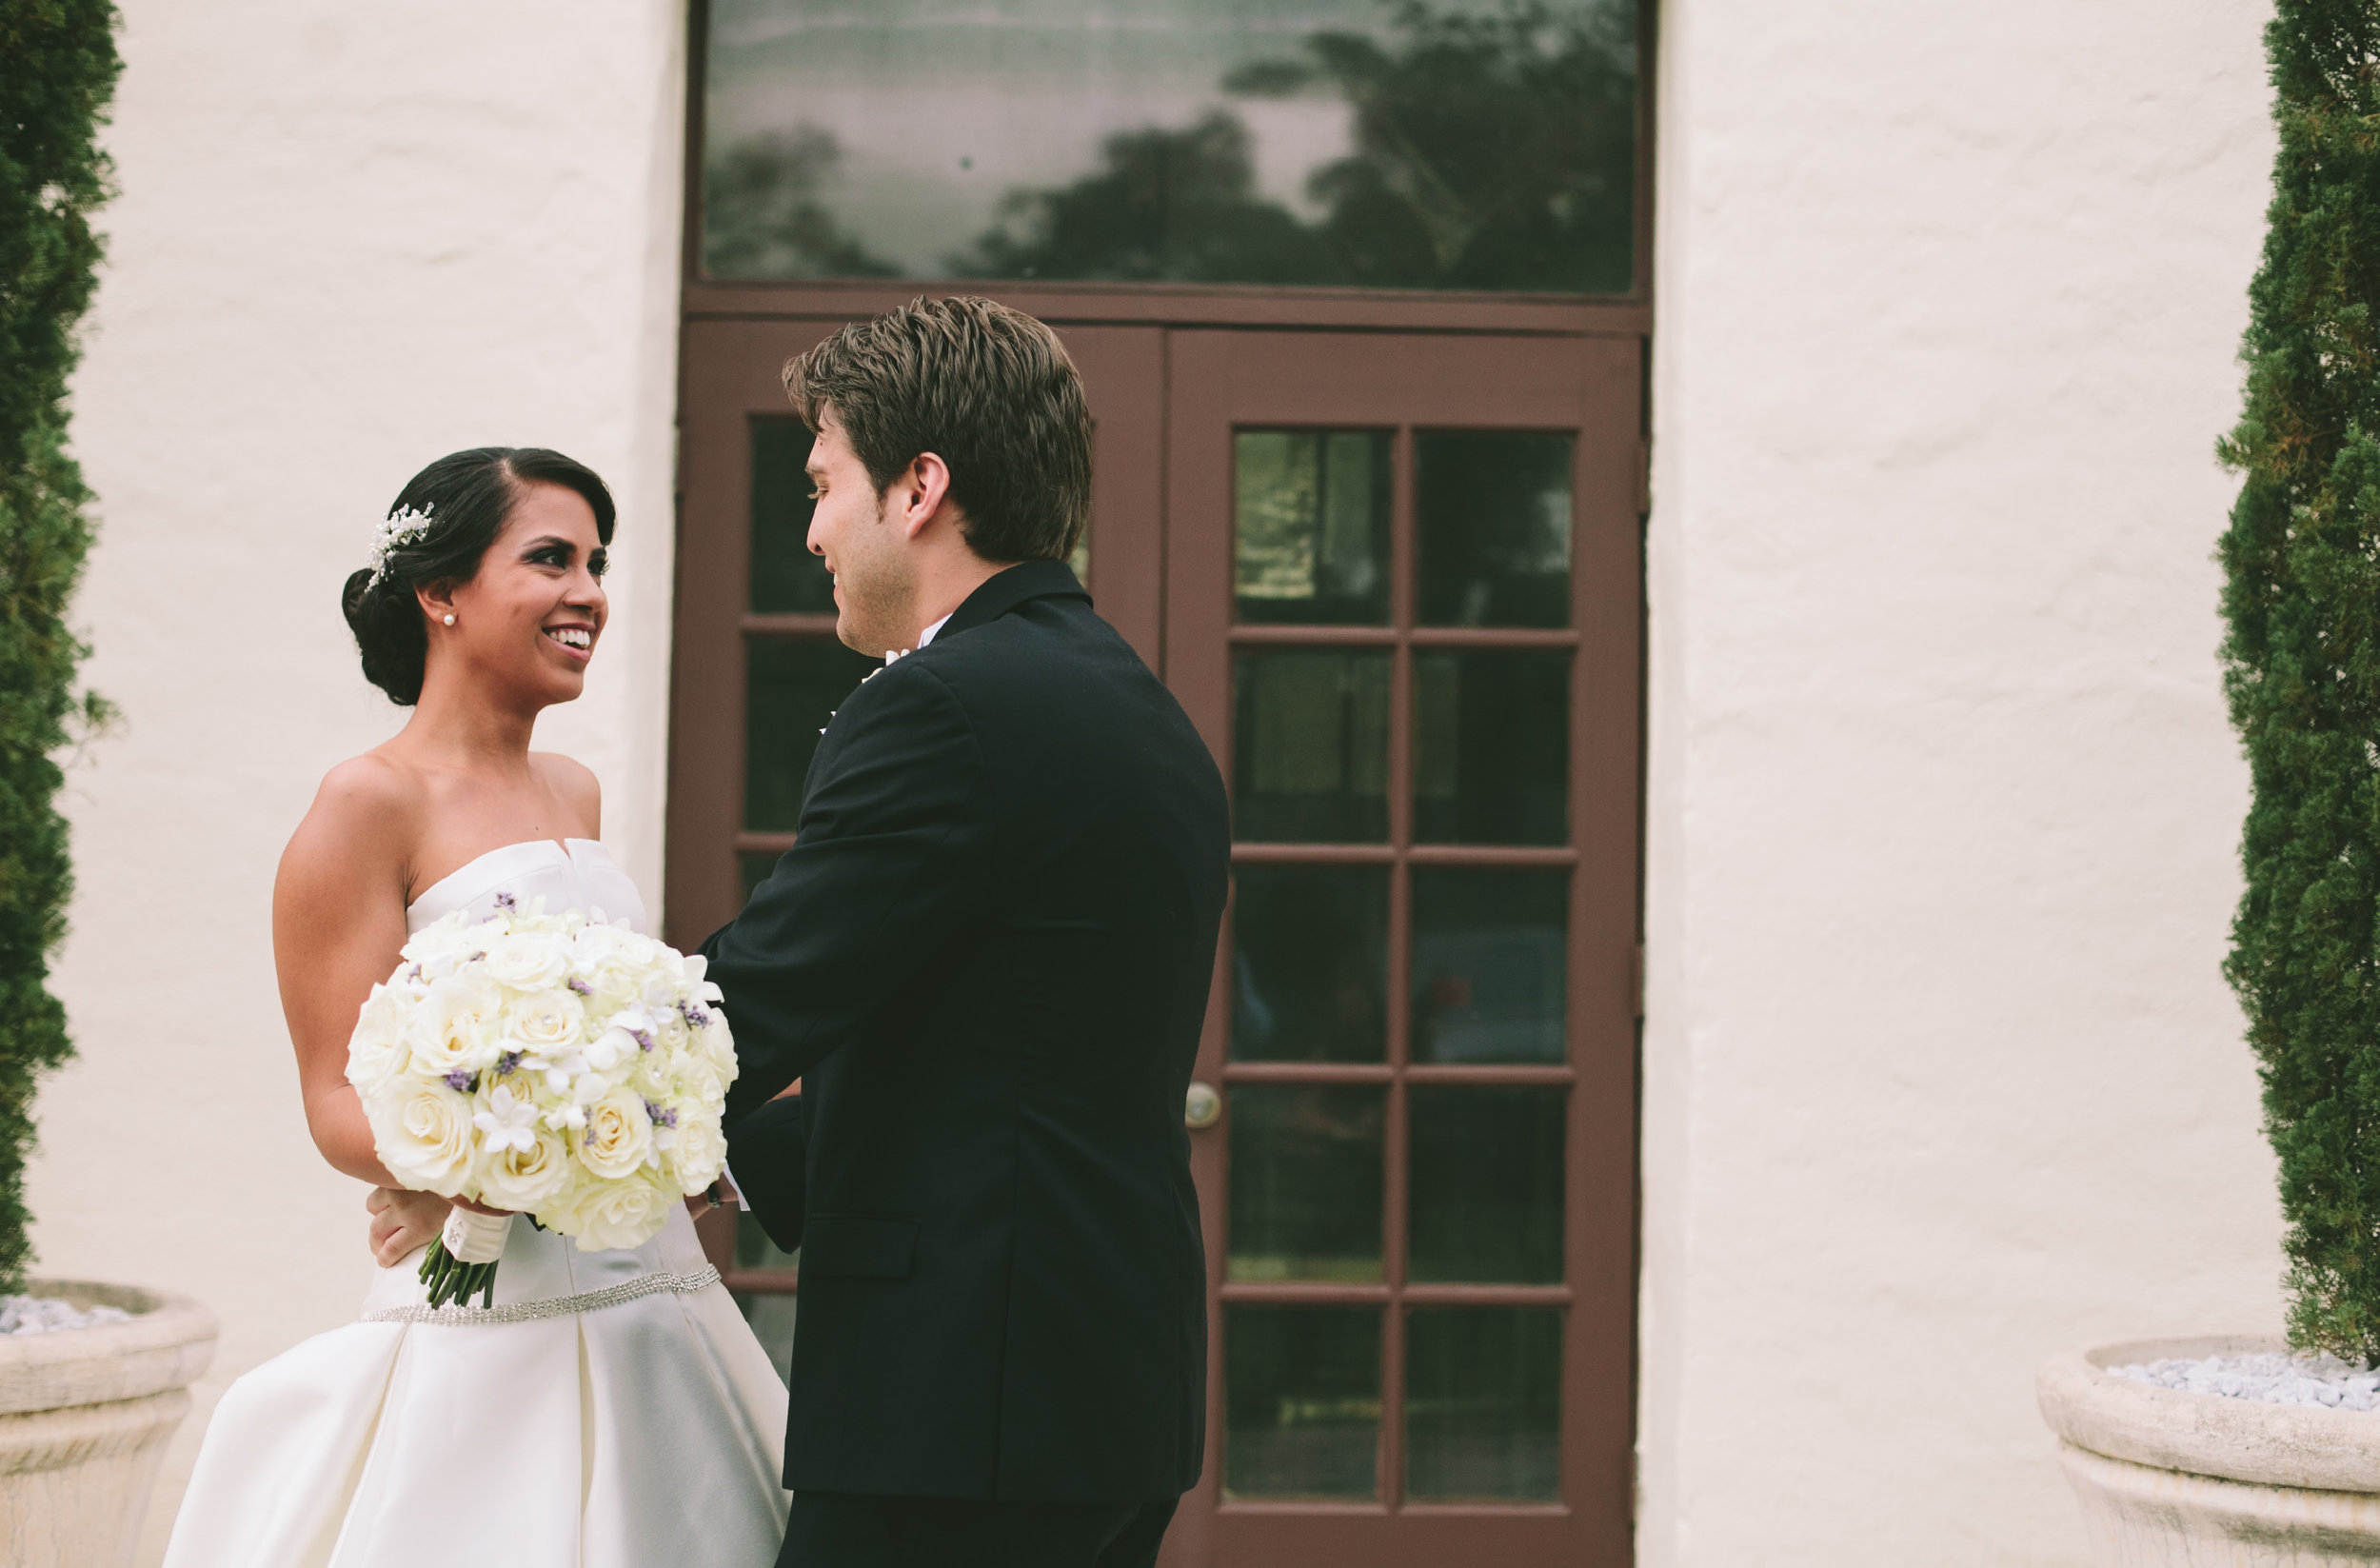 Liz + Julian Coral Gables Cocoplum Wedding35.jpg